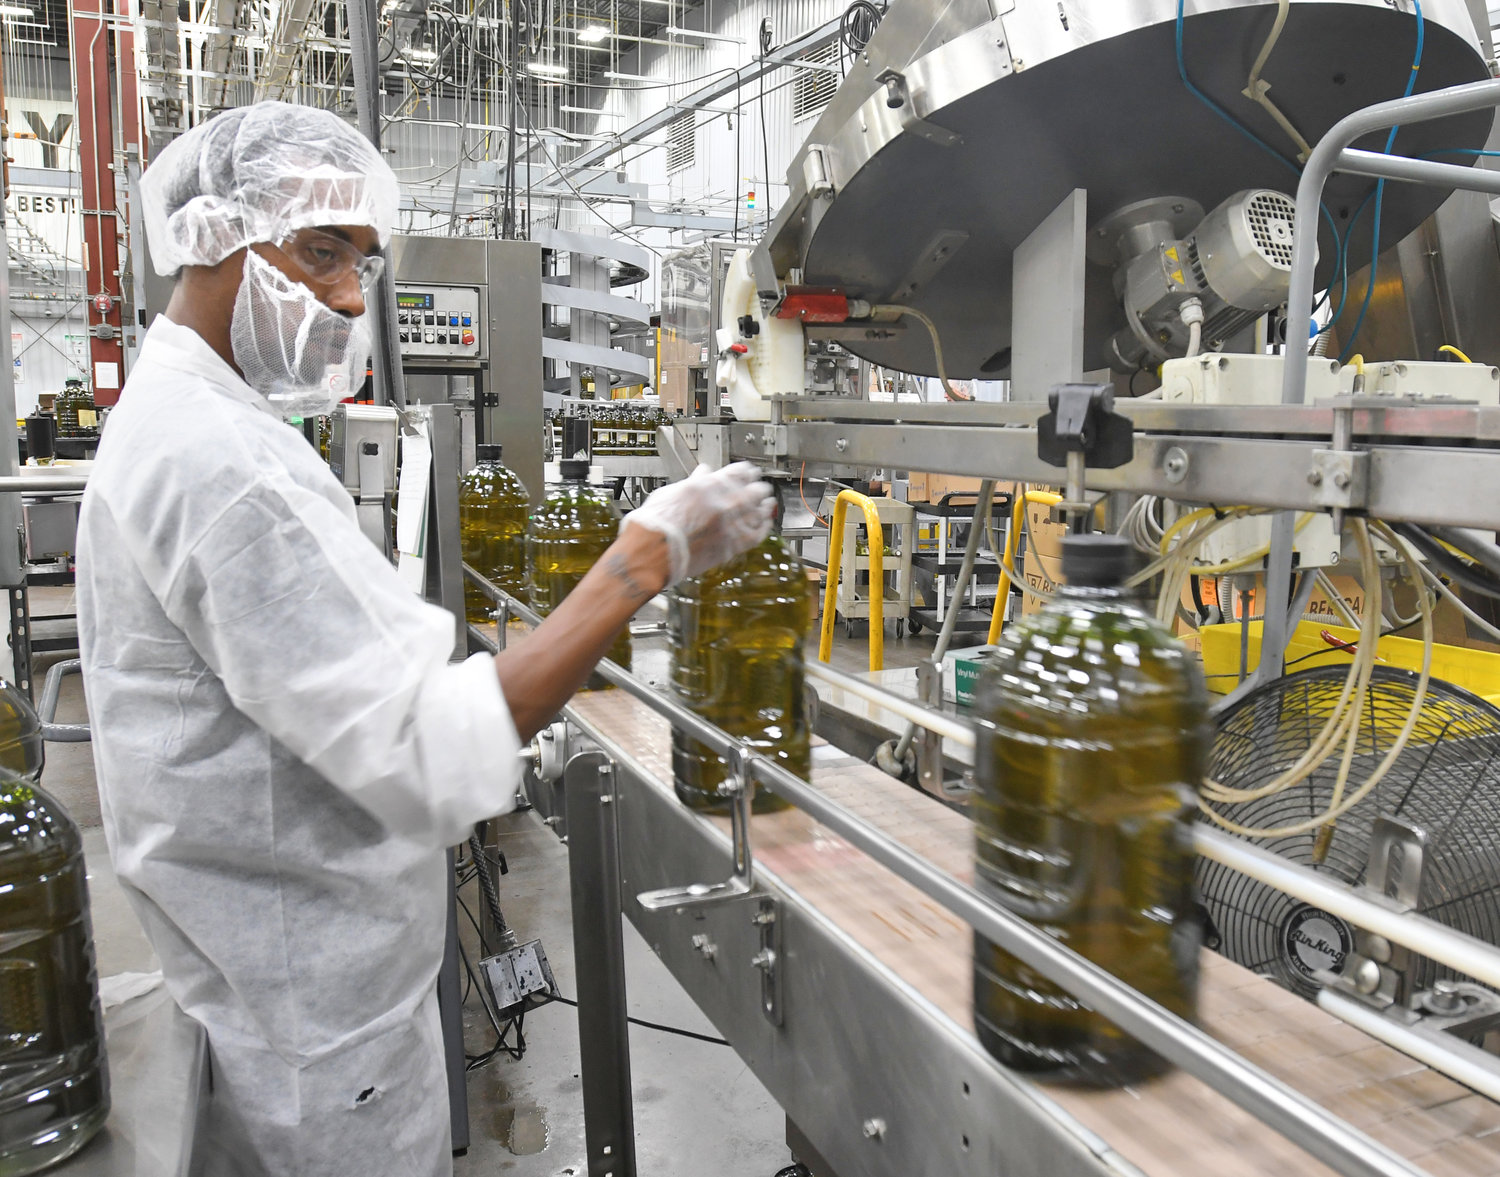 CAPPING THE PROCESS — Employee Jesse Walker conducts a quality check on caps for olive oil containers coming through the line at the Sovena USA plant at Griffiss park.